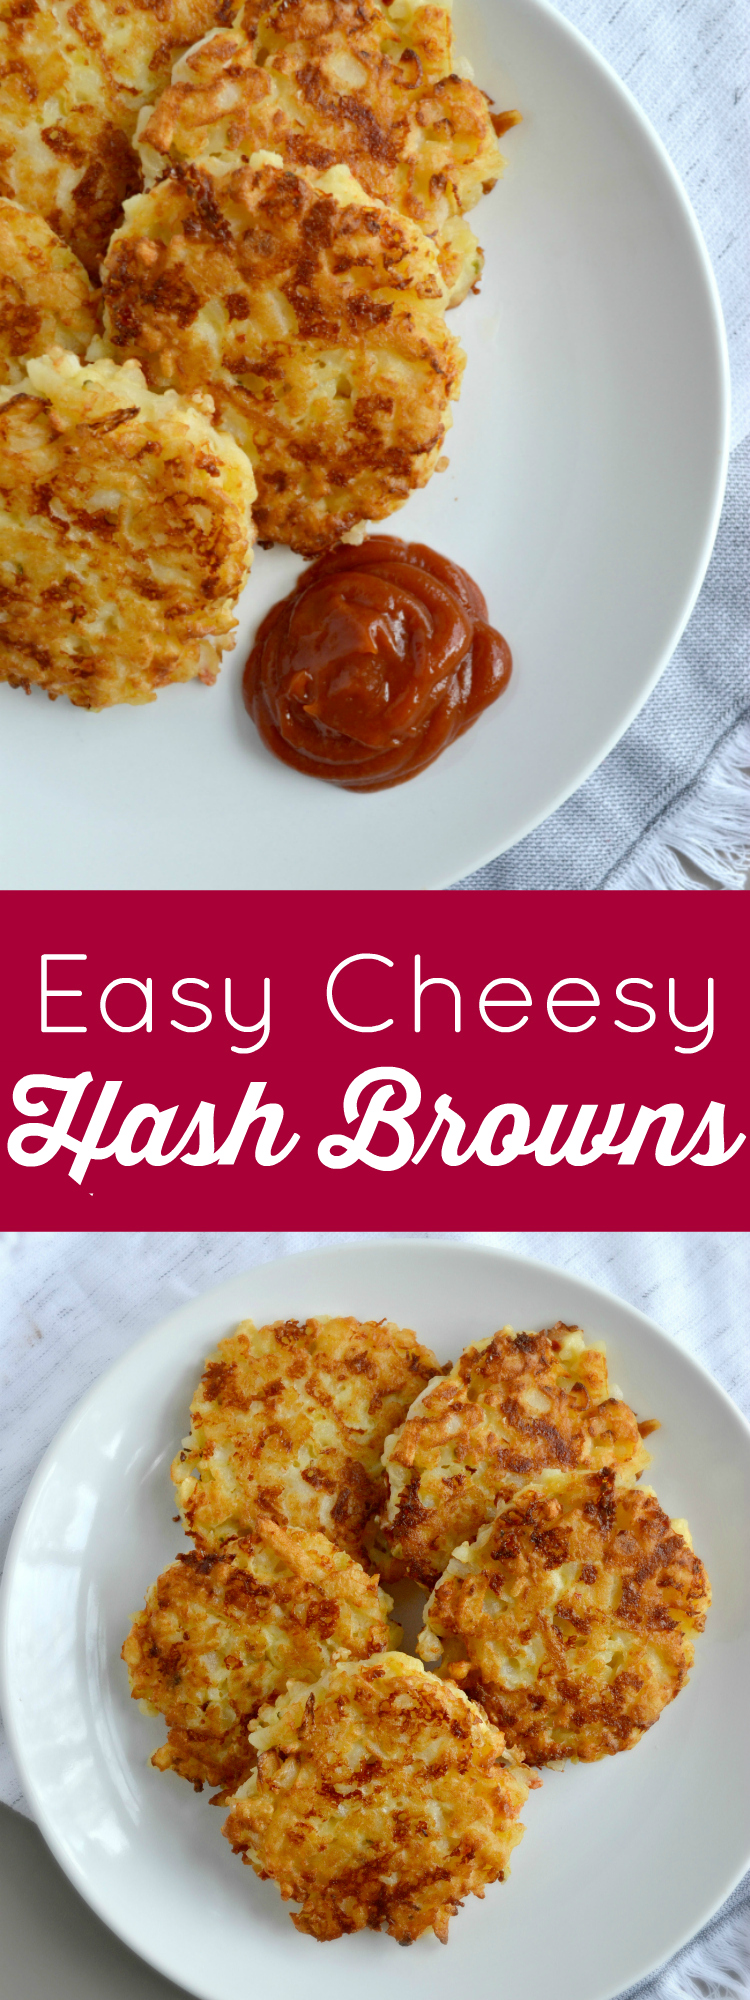 Cheesy Hash Brown Patties are perfect for breakfast and brunch! These crispy, cheesy rounds taste homemade but they are easy to make thanks to a special shortcut!